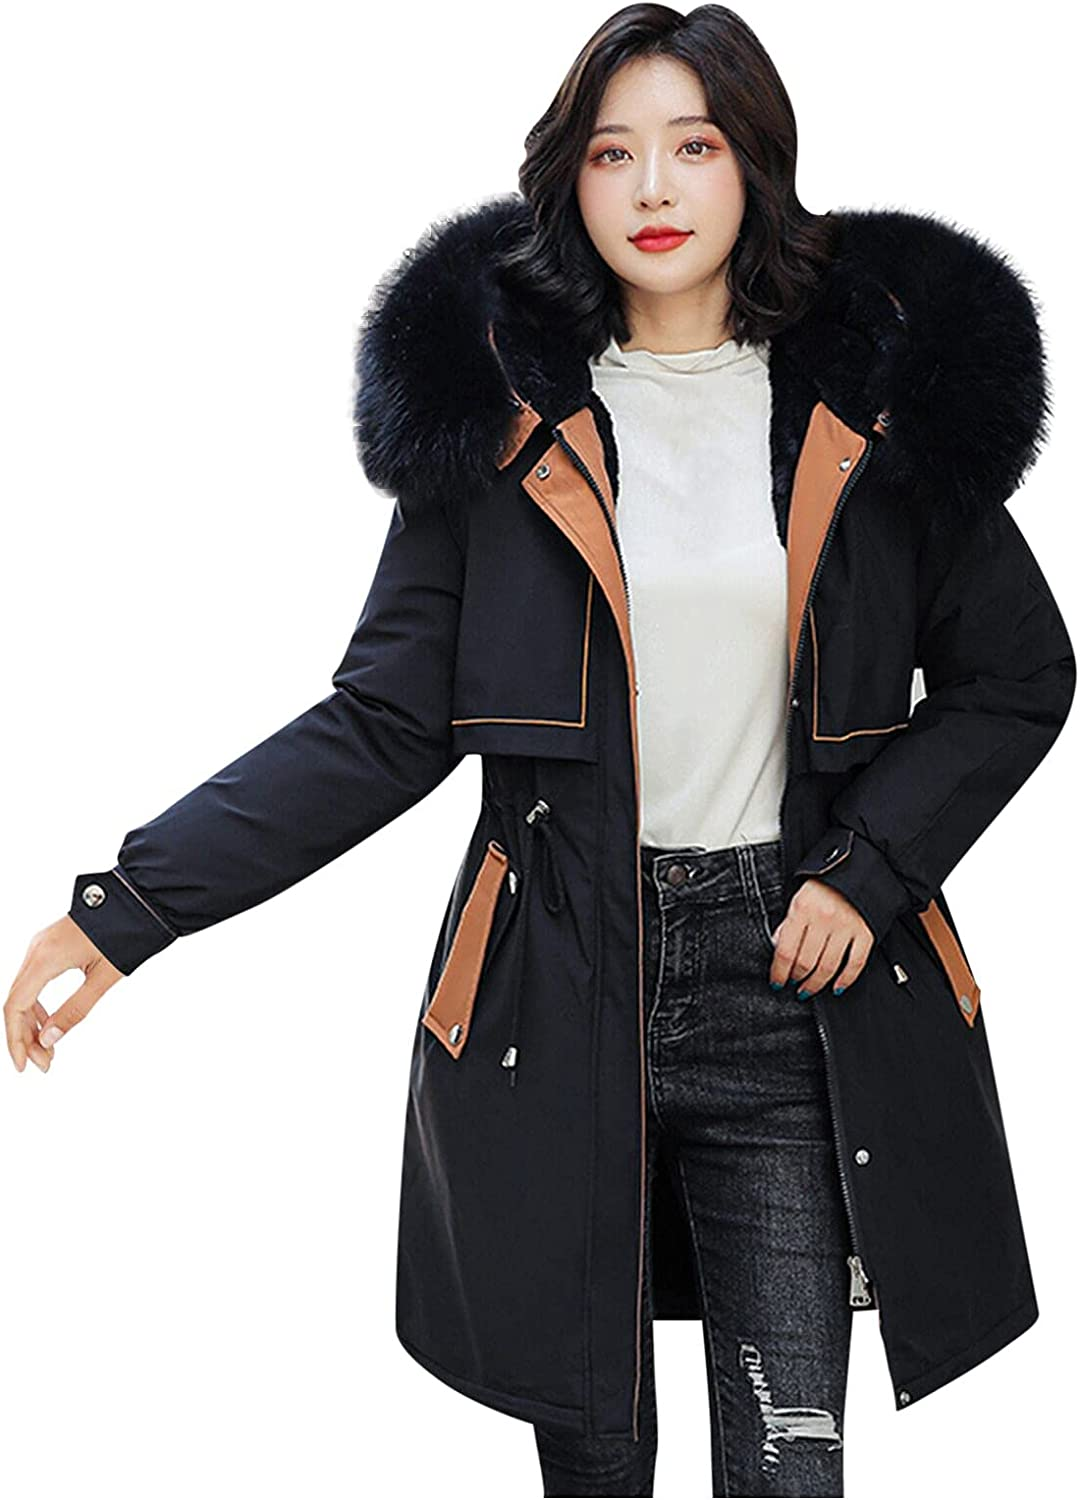 Womens Winter Hooded Warm Coats Thicken Fleece Fuzzy Outerwear Parkas Faux Fur Jackets with Pockets